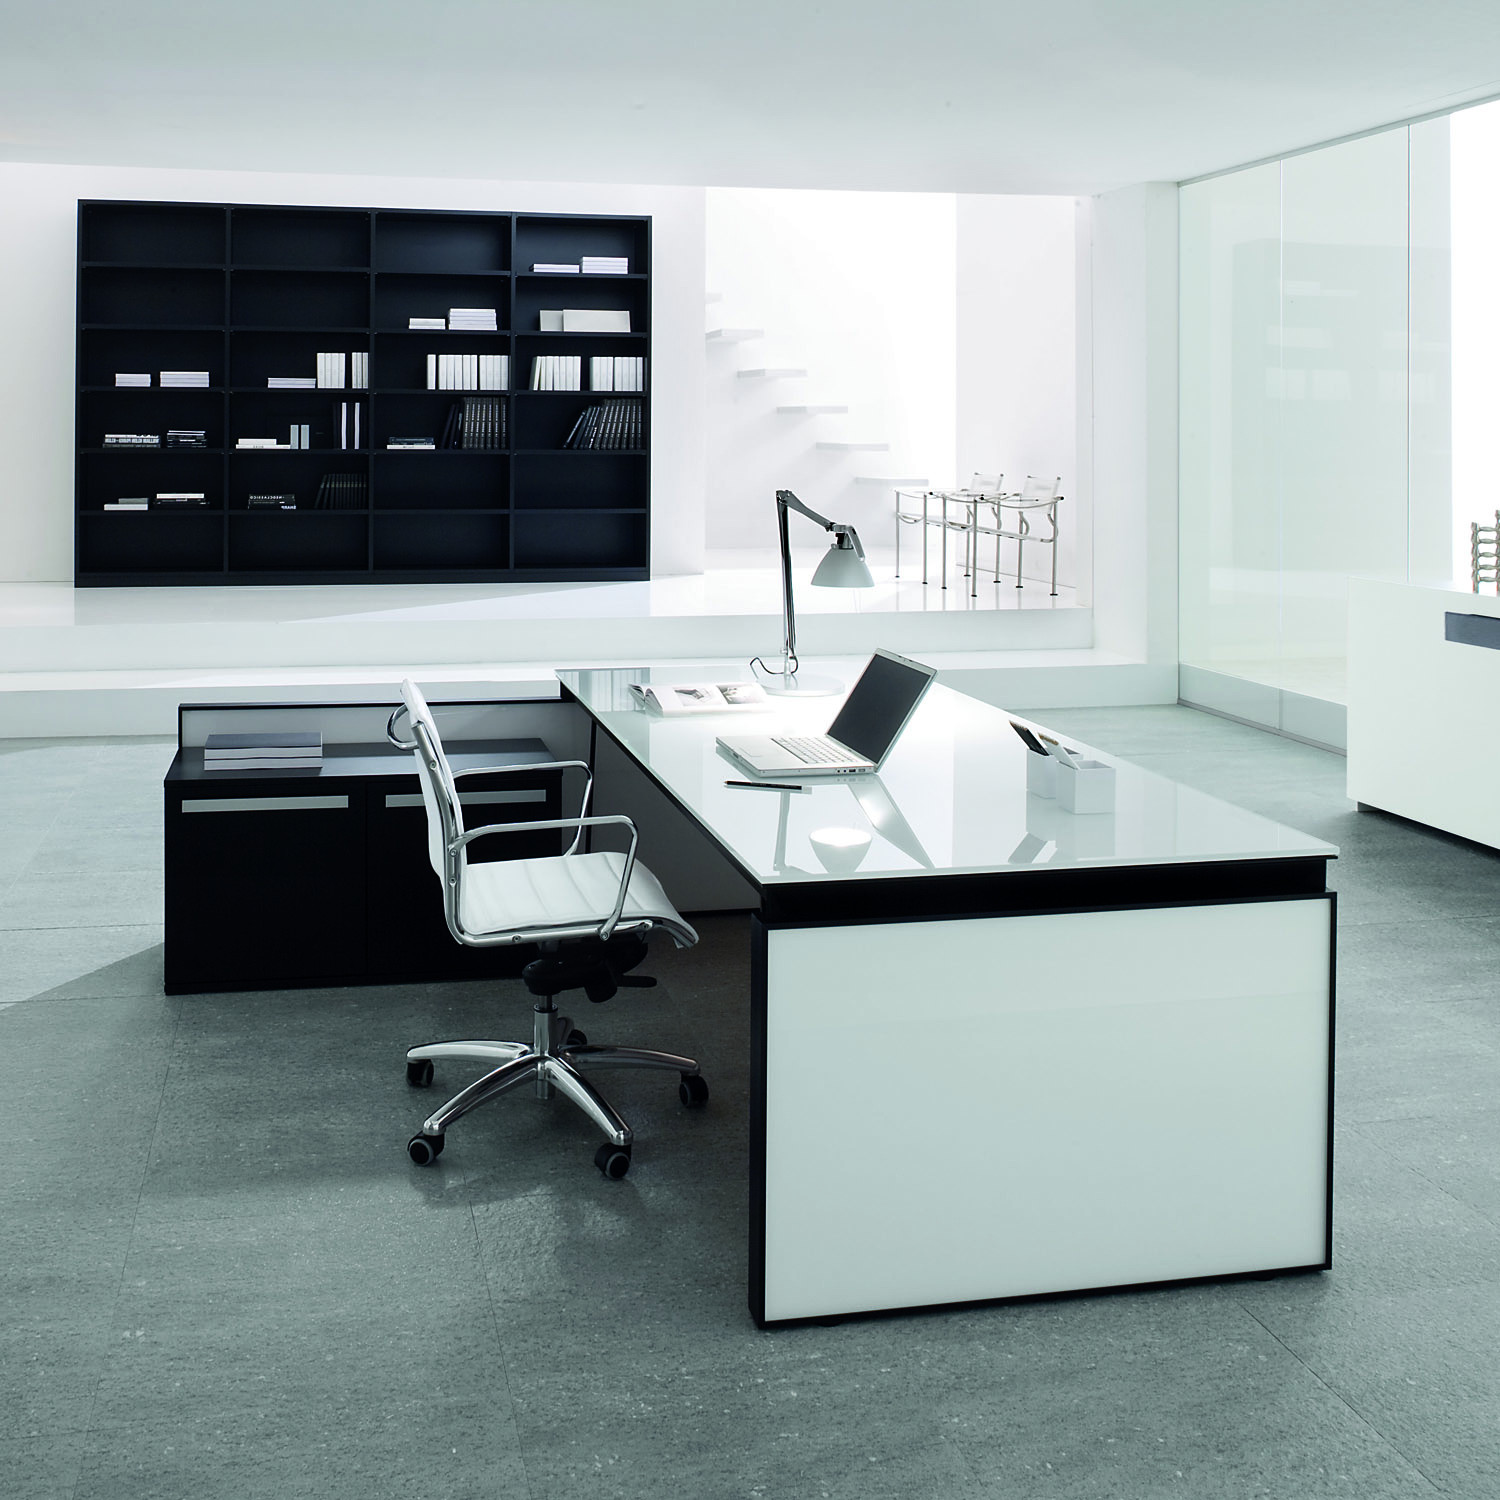 modular sz modern productimage furniture executive office qkgjpbvvzxkn l china shape desk